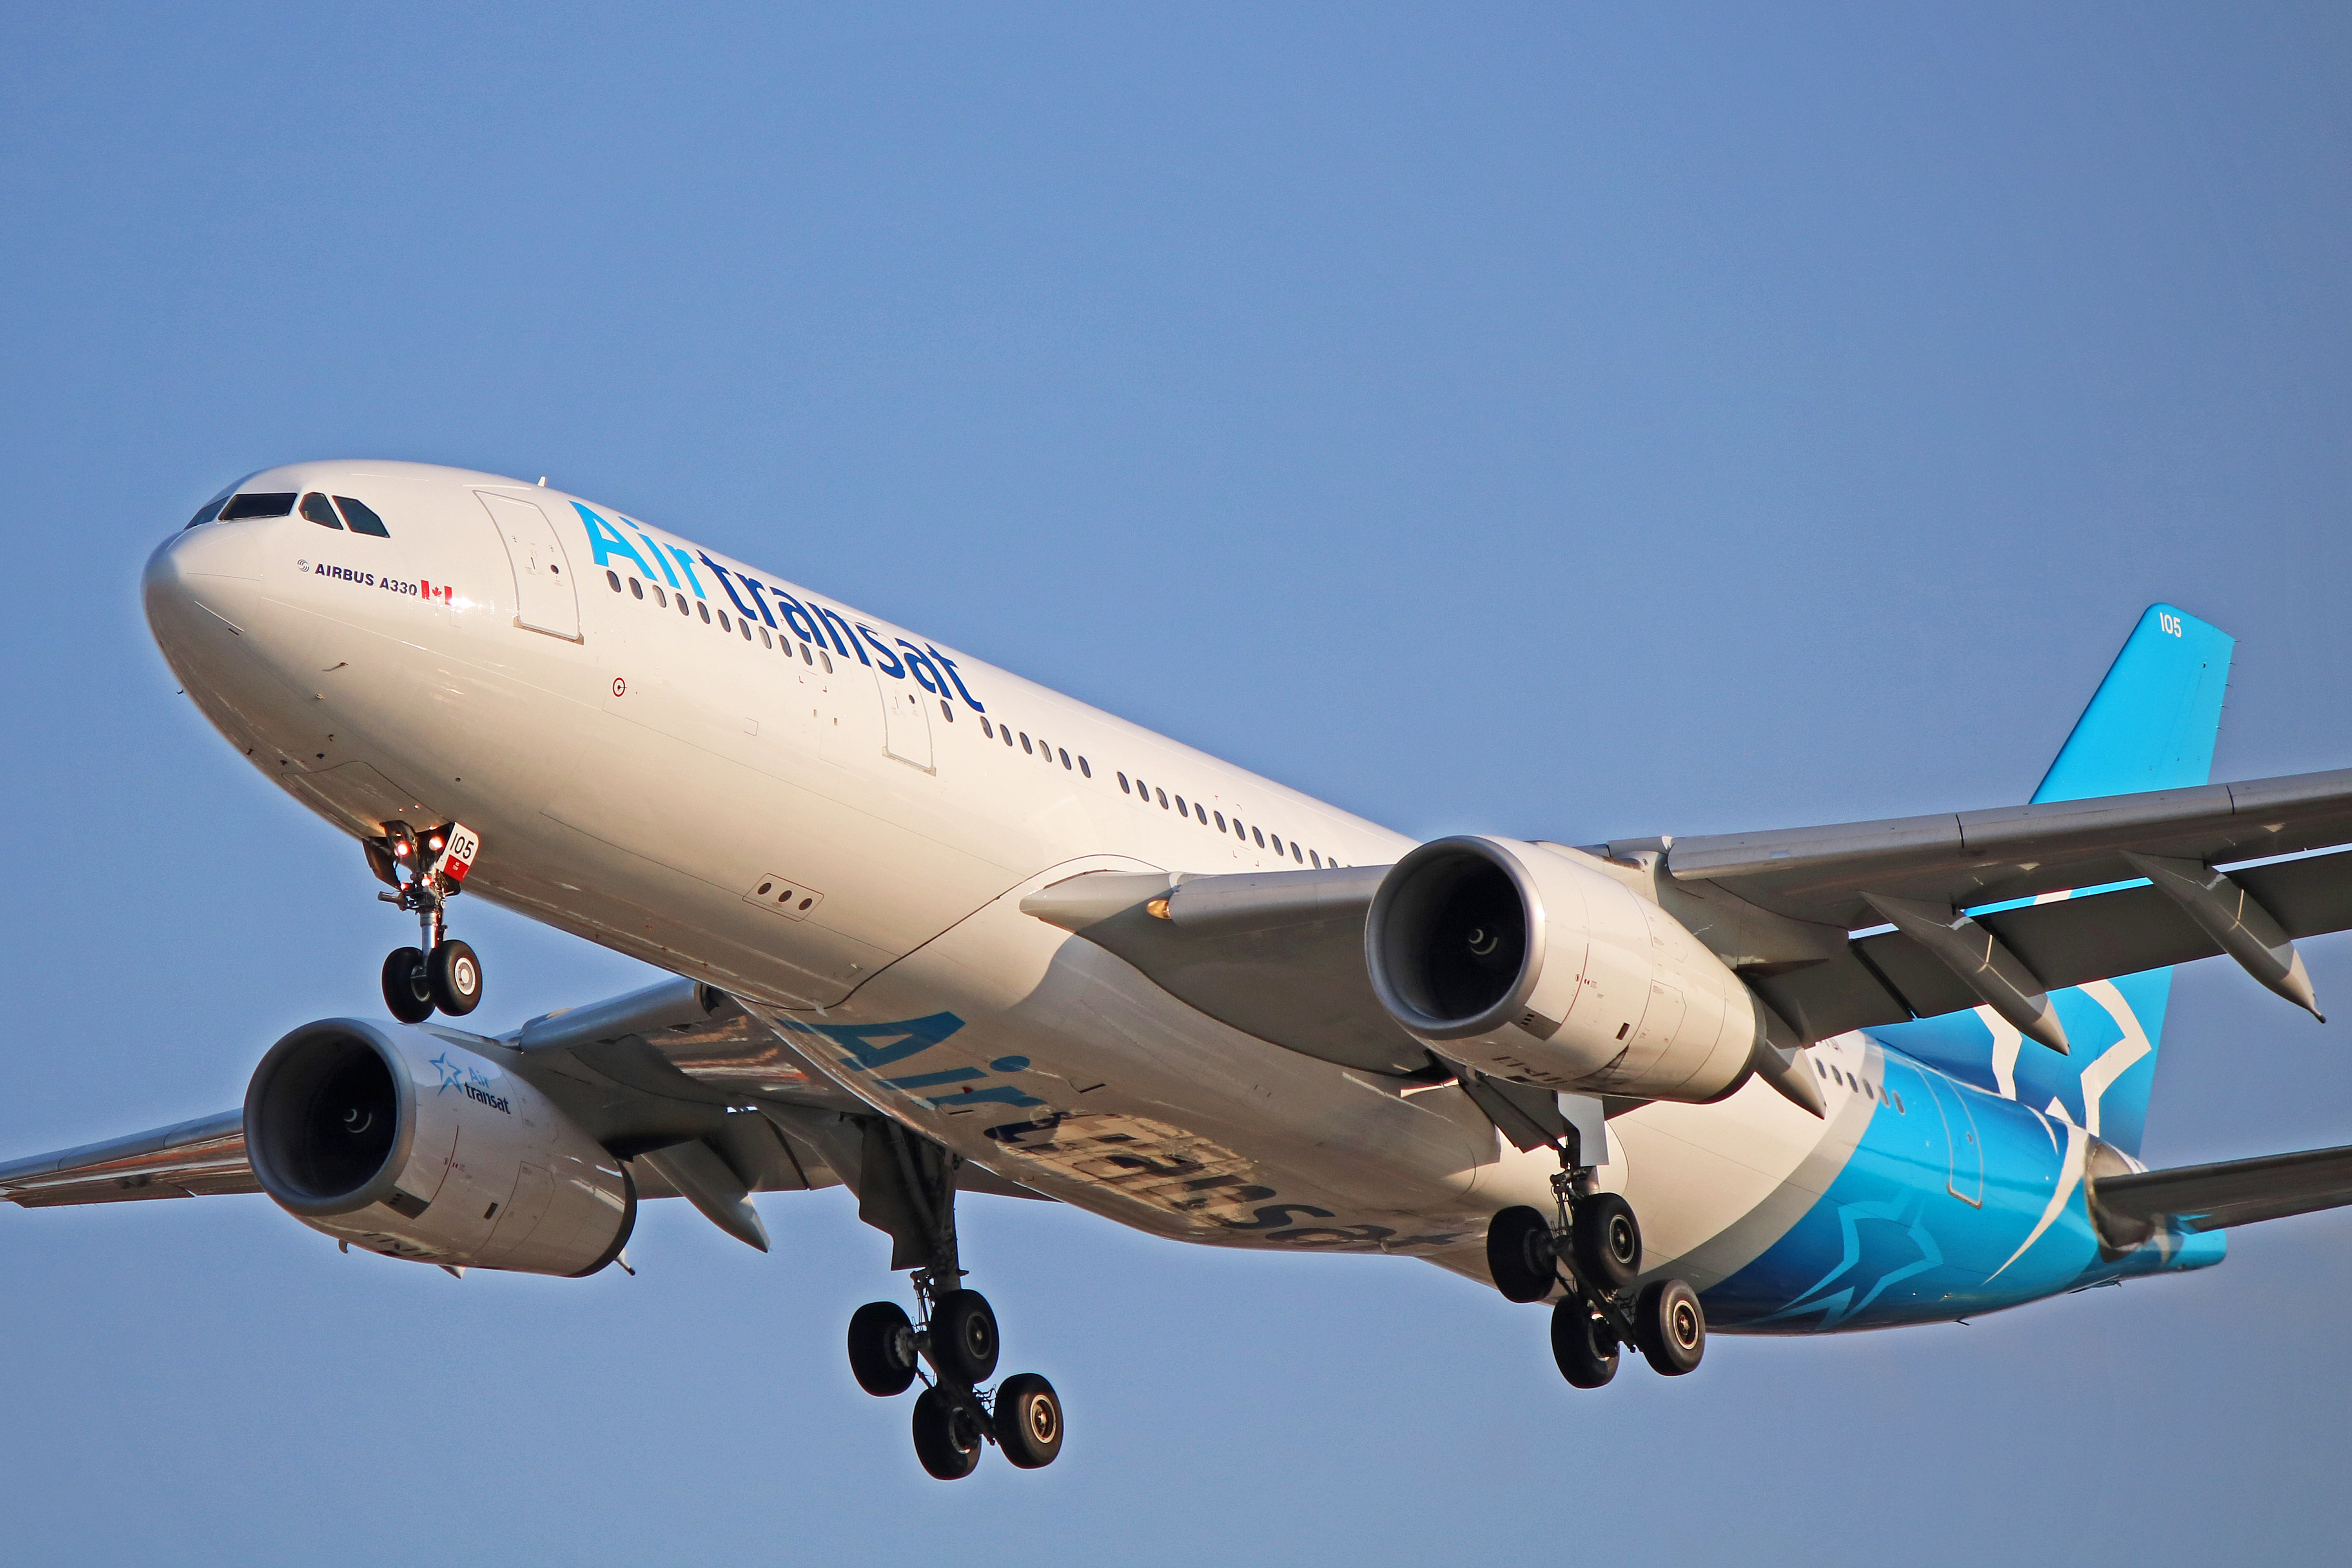 C-GTSI: Air Transat Airbus A330-200 (New and Old Livery)